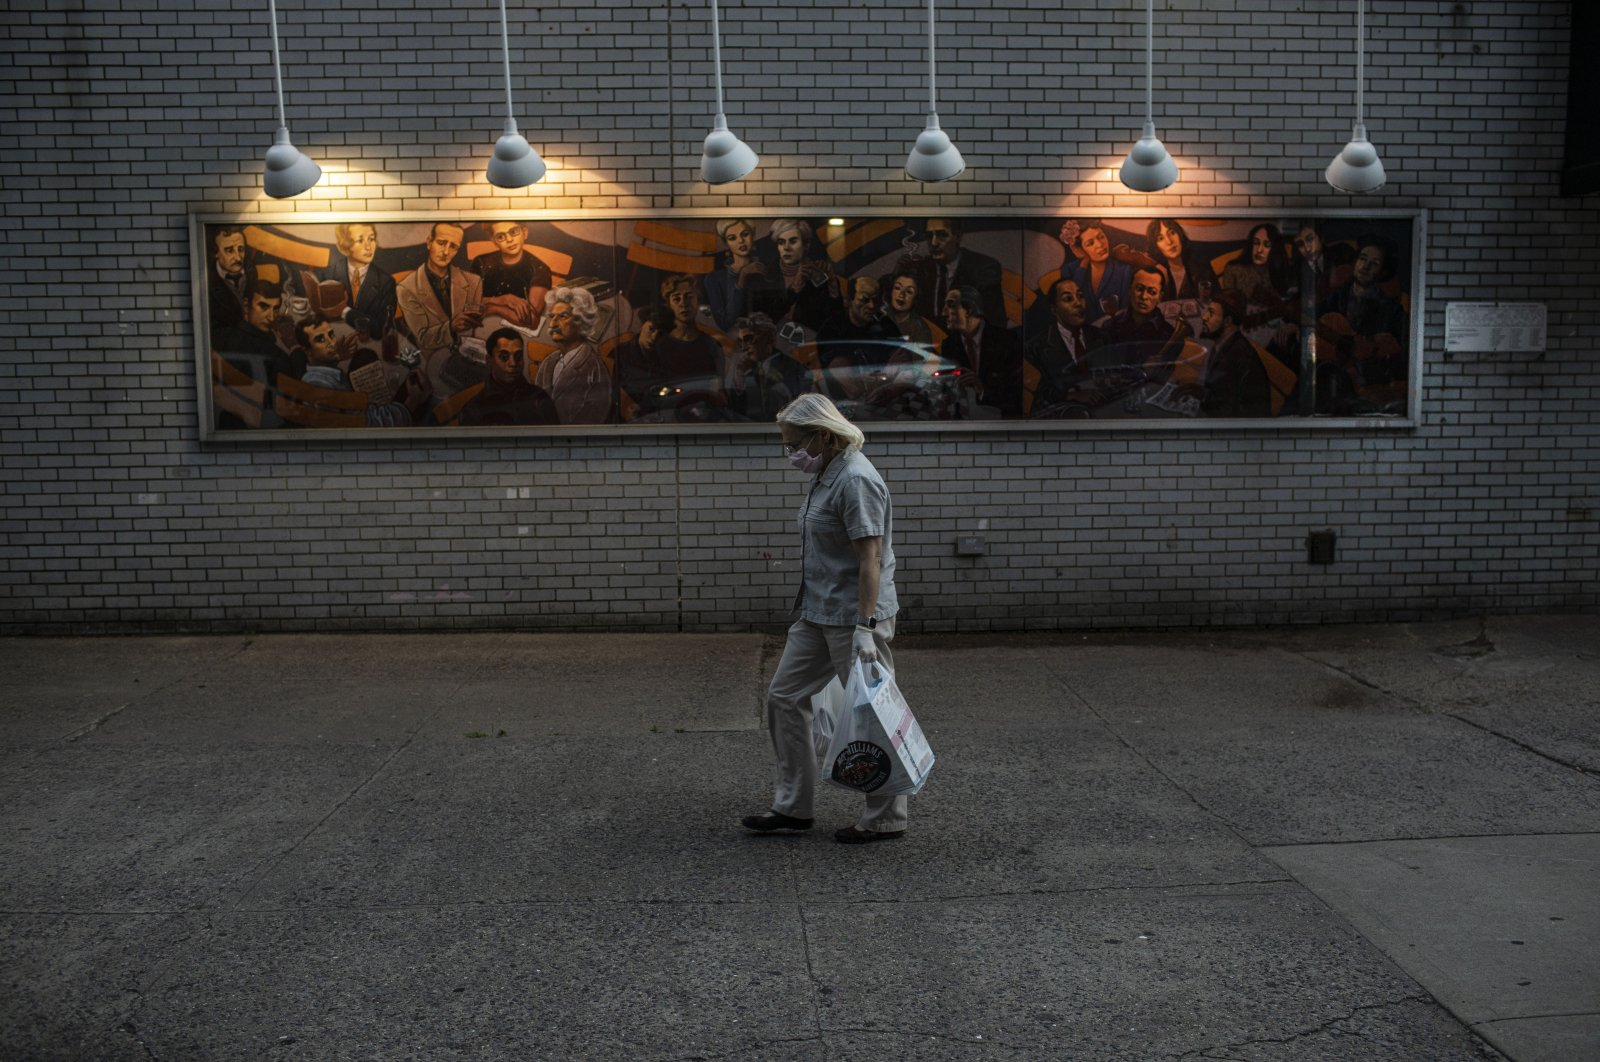 A woman carries shopping bags as she leaves a grocery store, New York City, New York, U.S, June 10, 2020. (AP Photo)